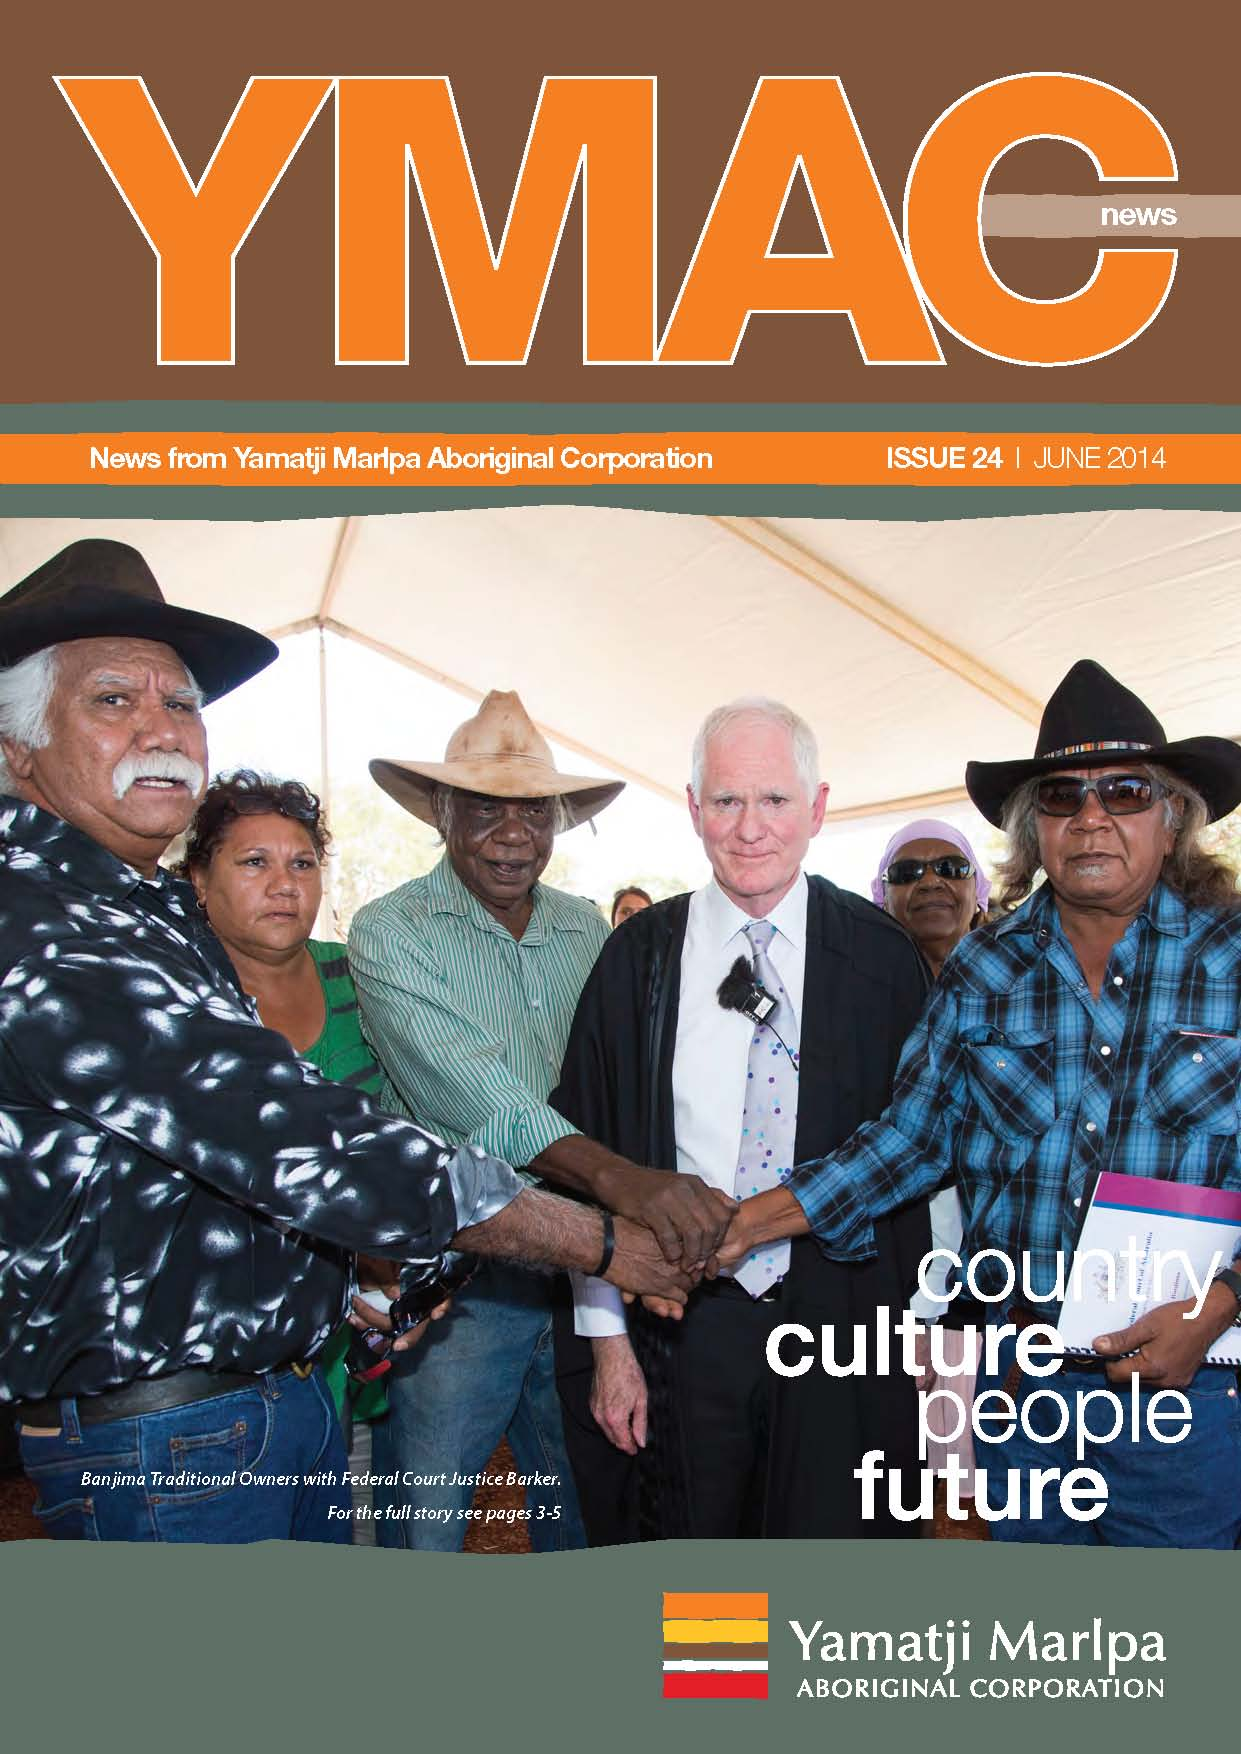 YMAC News issue 24 FRONT COVER